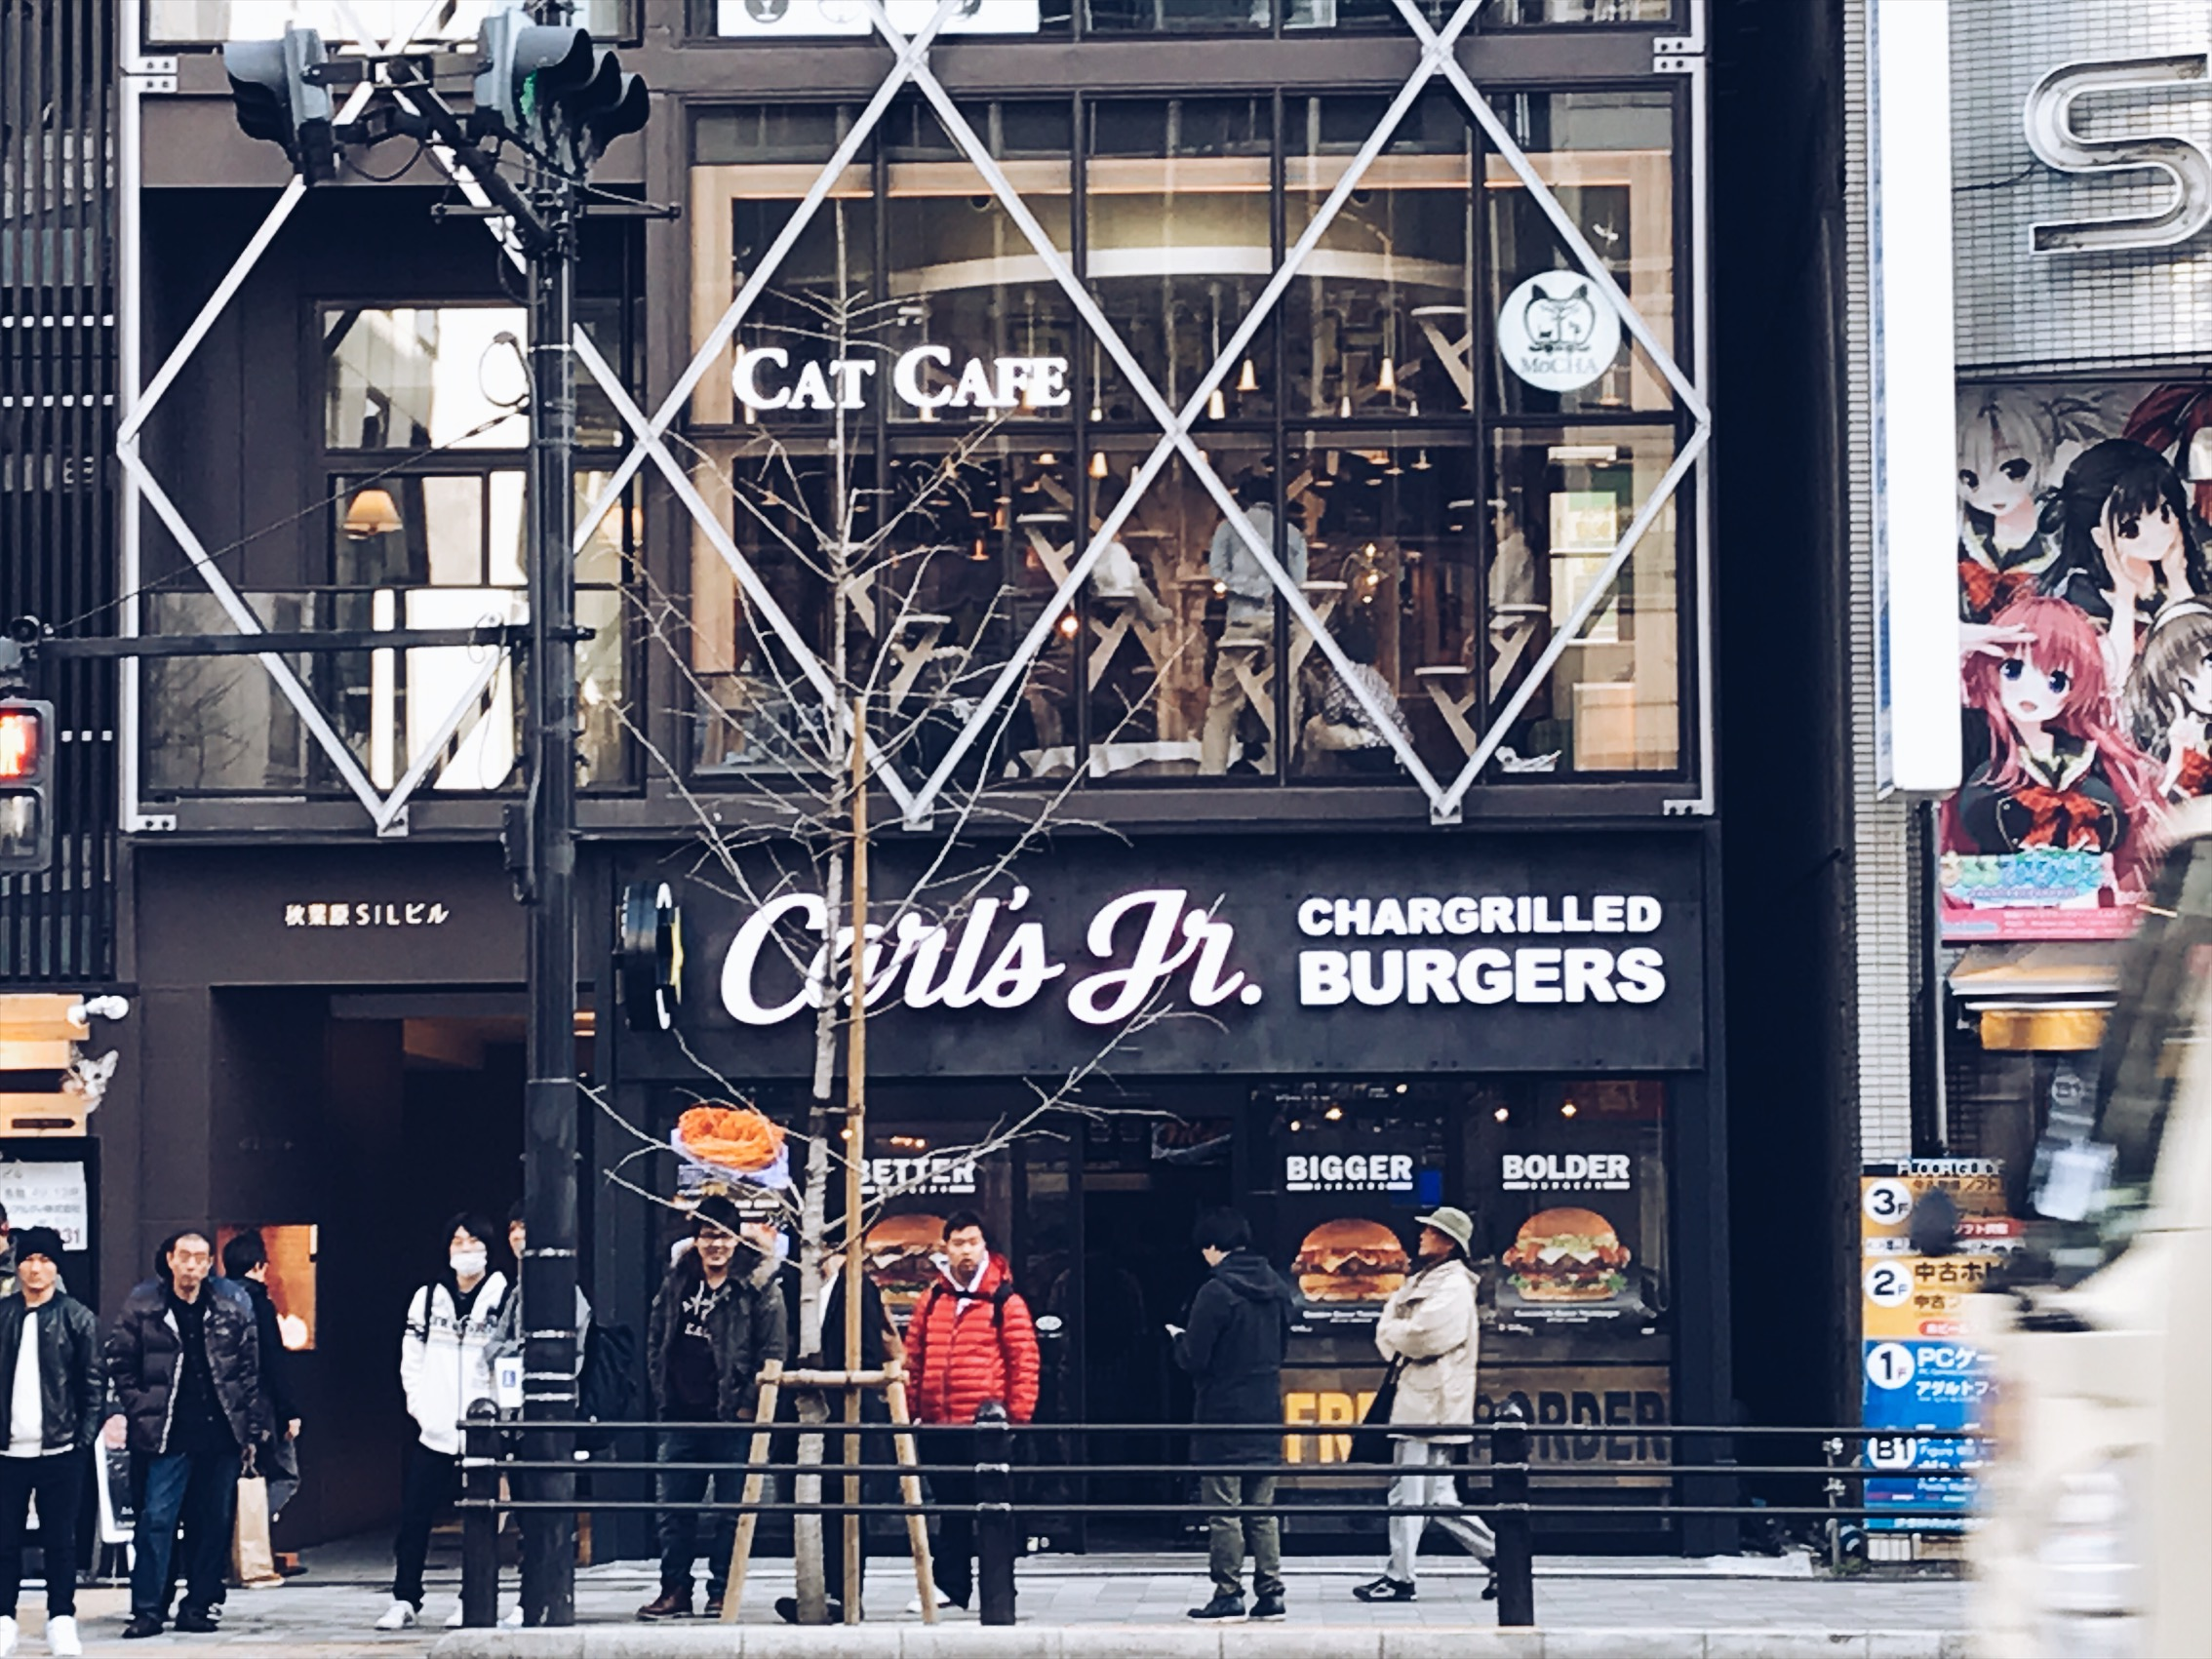 While I was geeking over this Carl's Jr in Japan Gina comes banging on my shoulders in excitement. I turned around to see what the fuck she was soooooo excited about it and she points to the Cat Cafe haha. It cost money to get in and drink coffee or tea with some cats and you have to be in there for 30 mins. Since us guys have no interest in cats we went to the third floor for beer, and air soft guns!!!